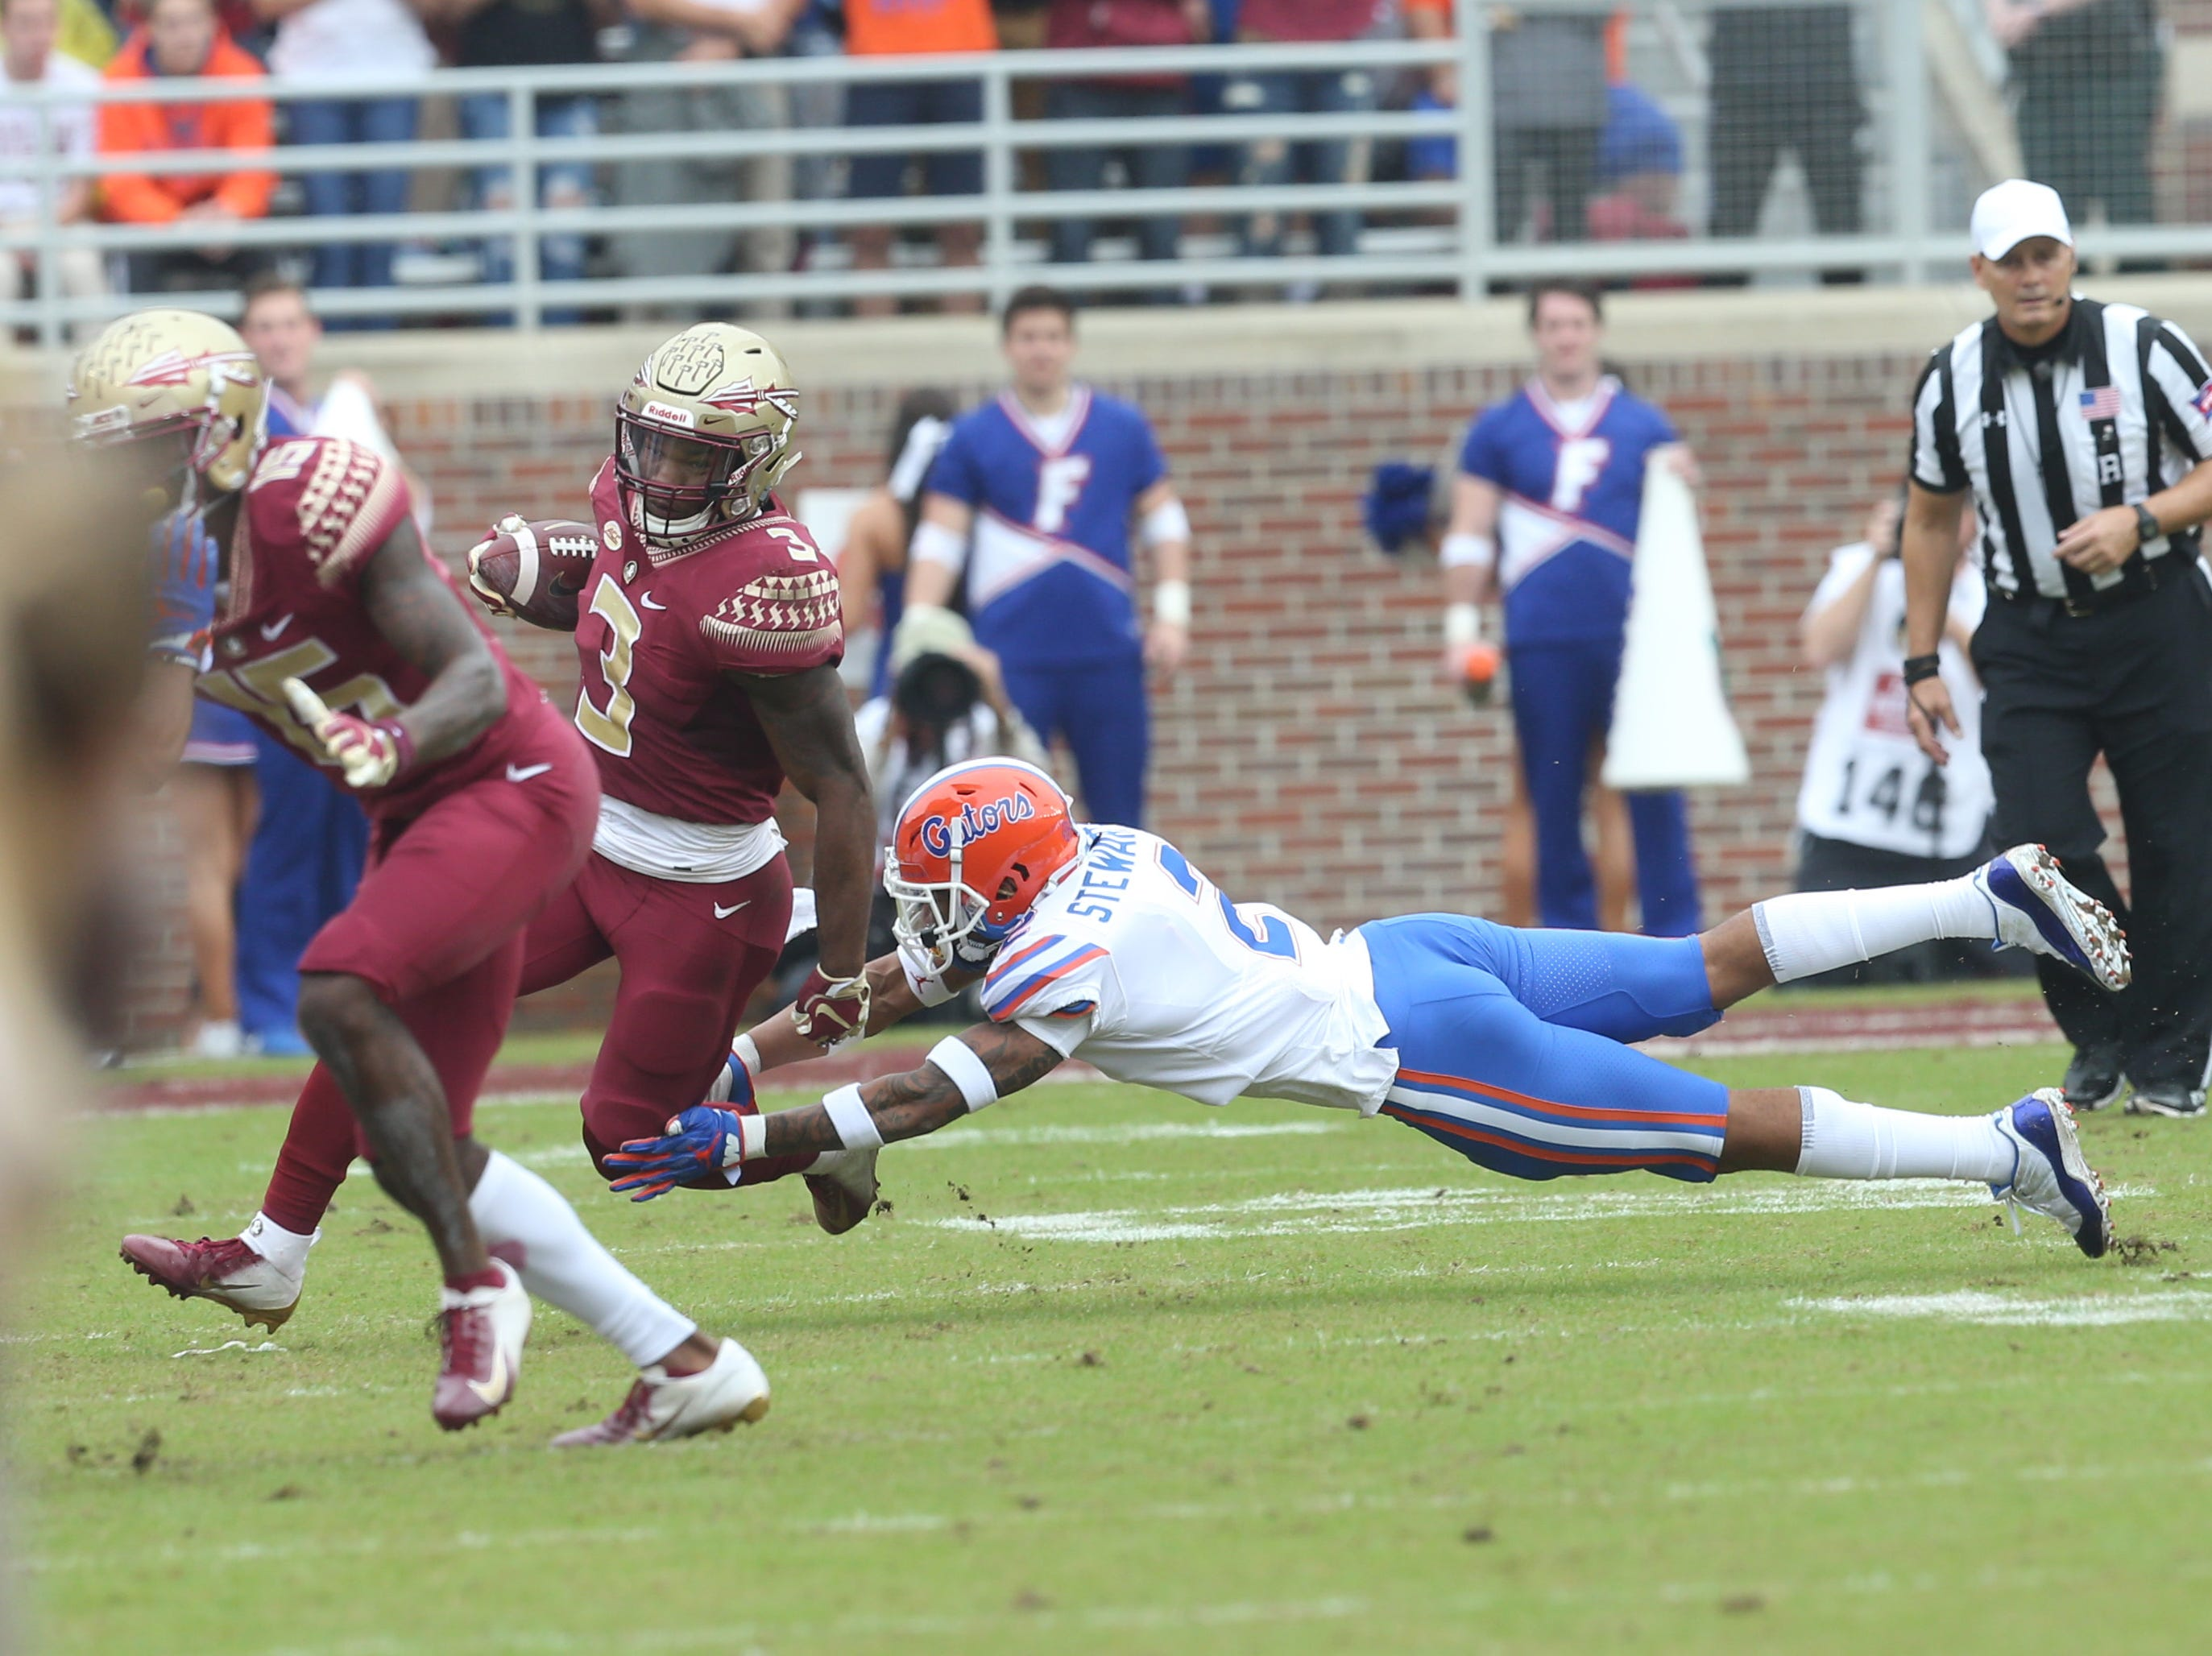 Florida State Seminoles running back Cam Akers (3) out runs a tackle as the Florida State Seminoles take on their rival the Florida Gators in college football at Doak S. Campbell Stadium, Saturday, Nov. 24, 2018.